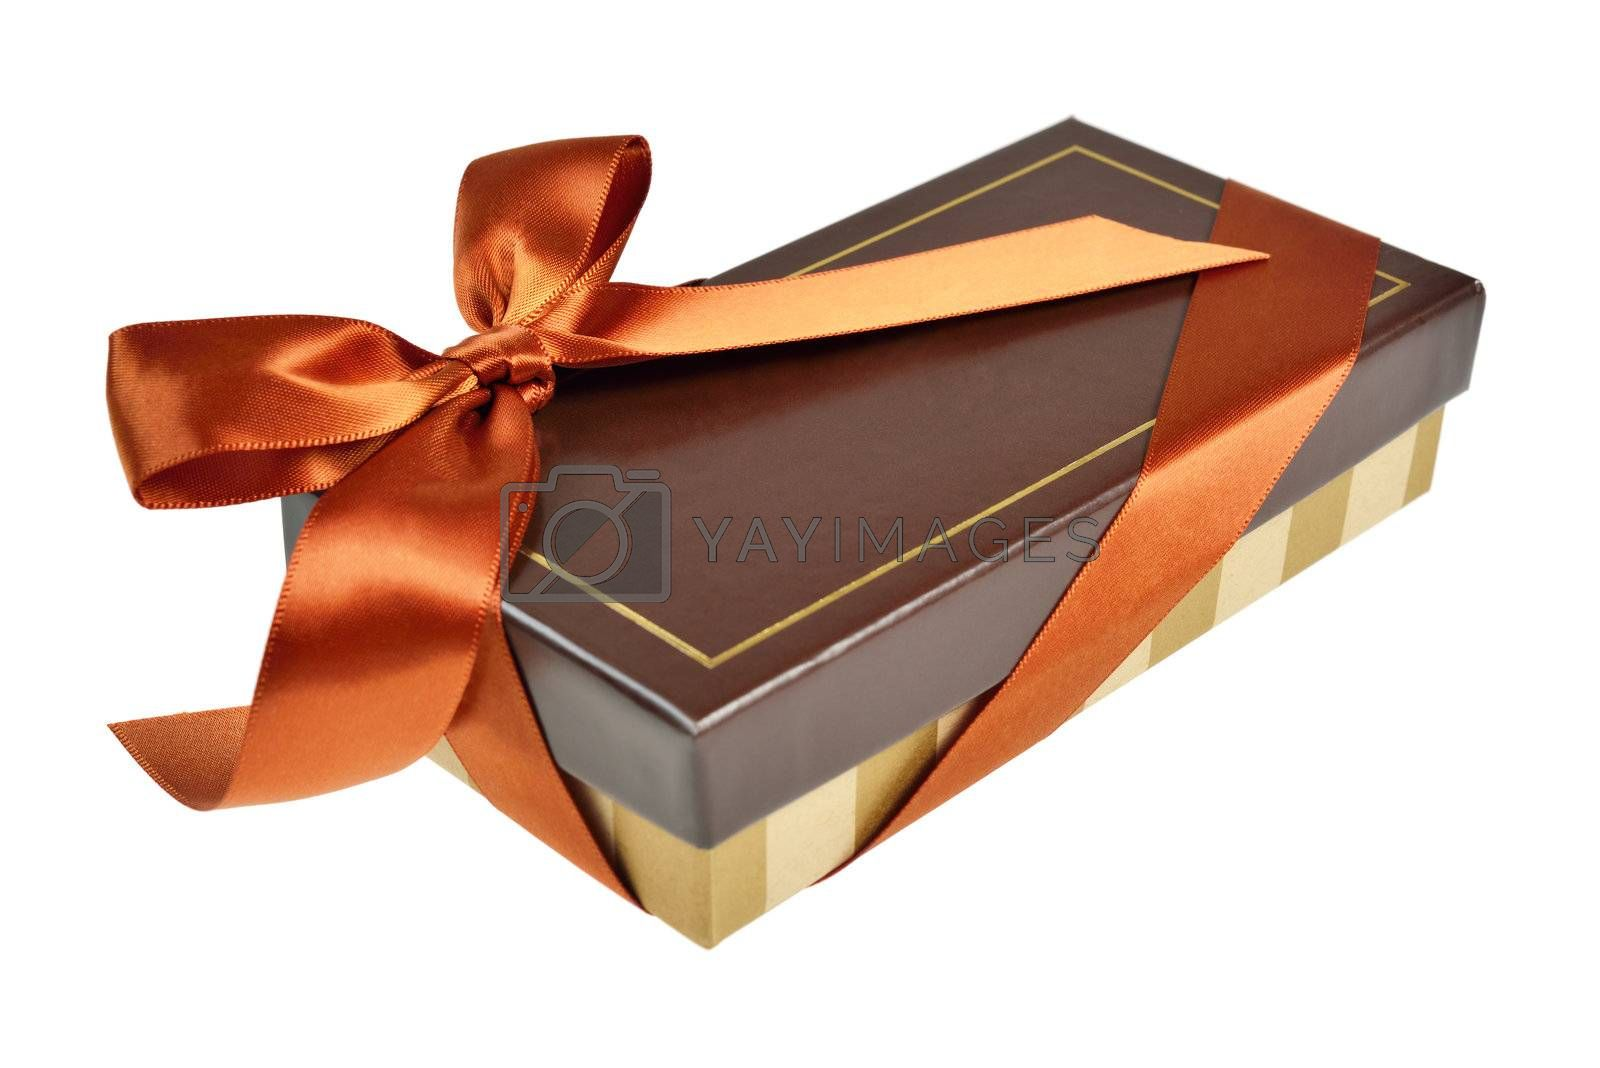 Gift box with ribbon and bow. Isolated on white.